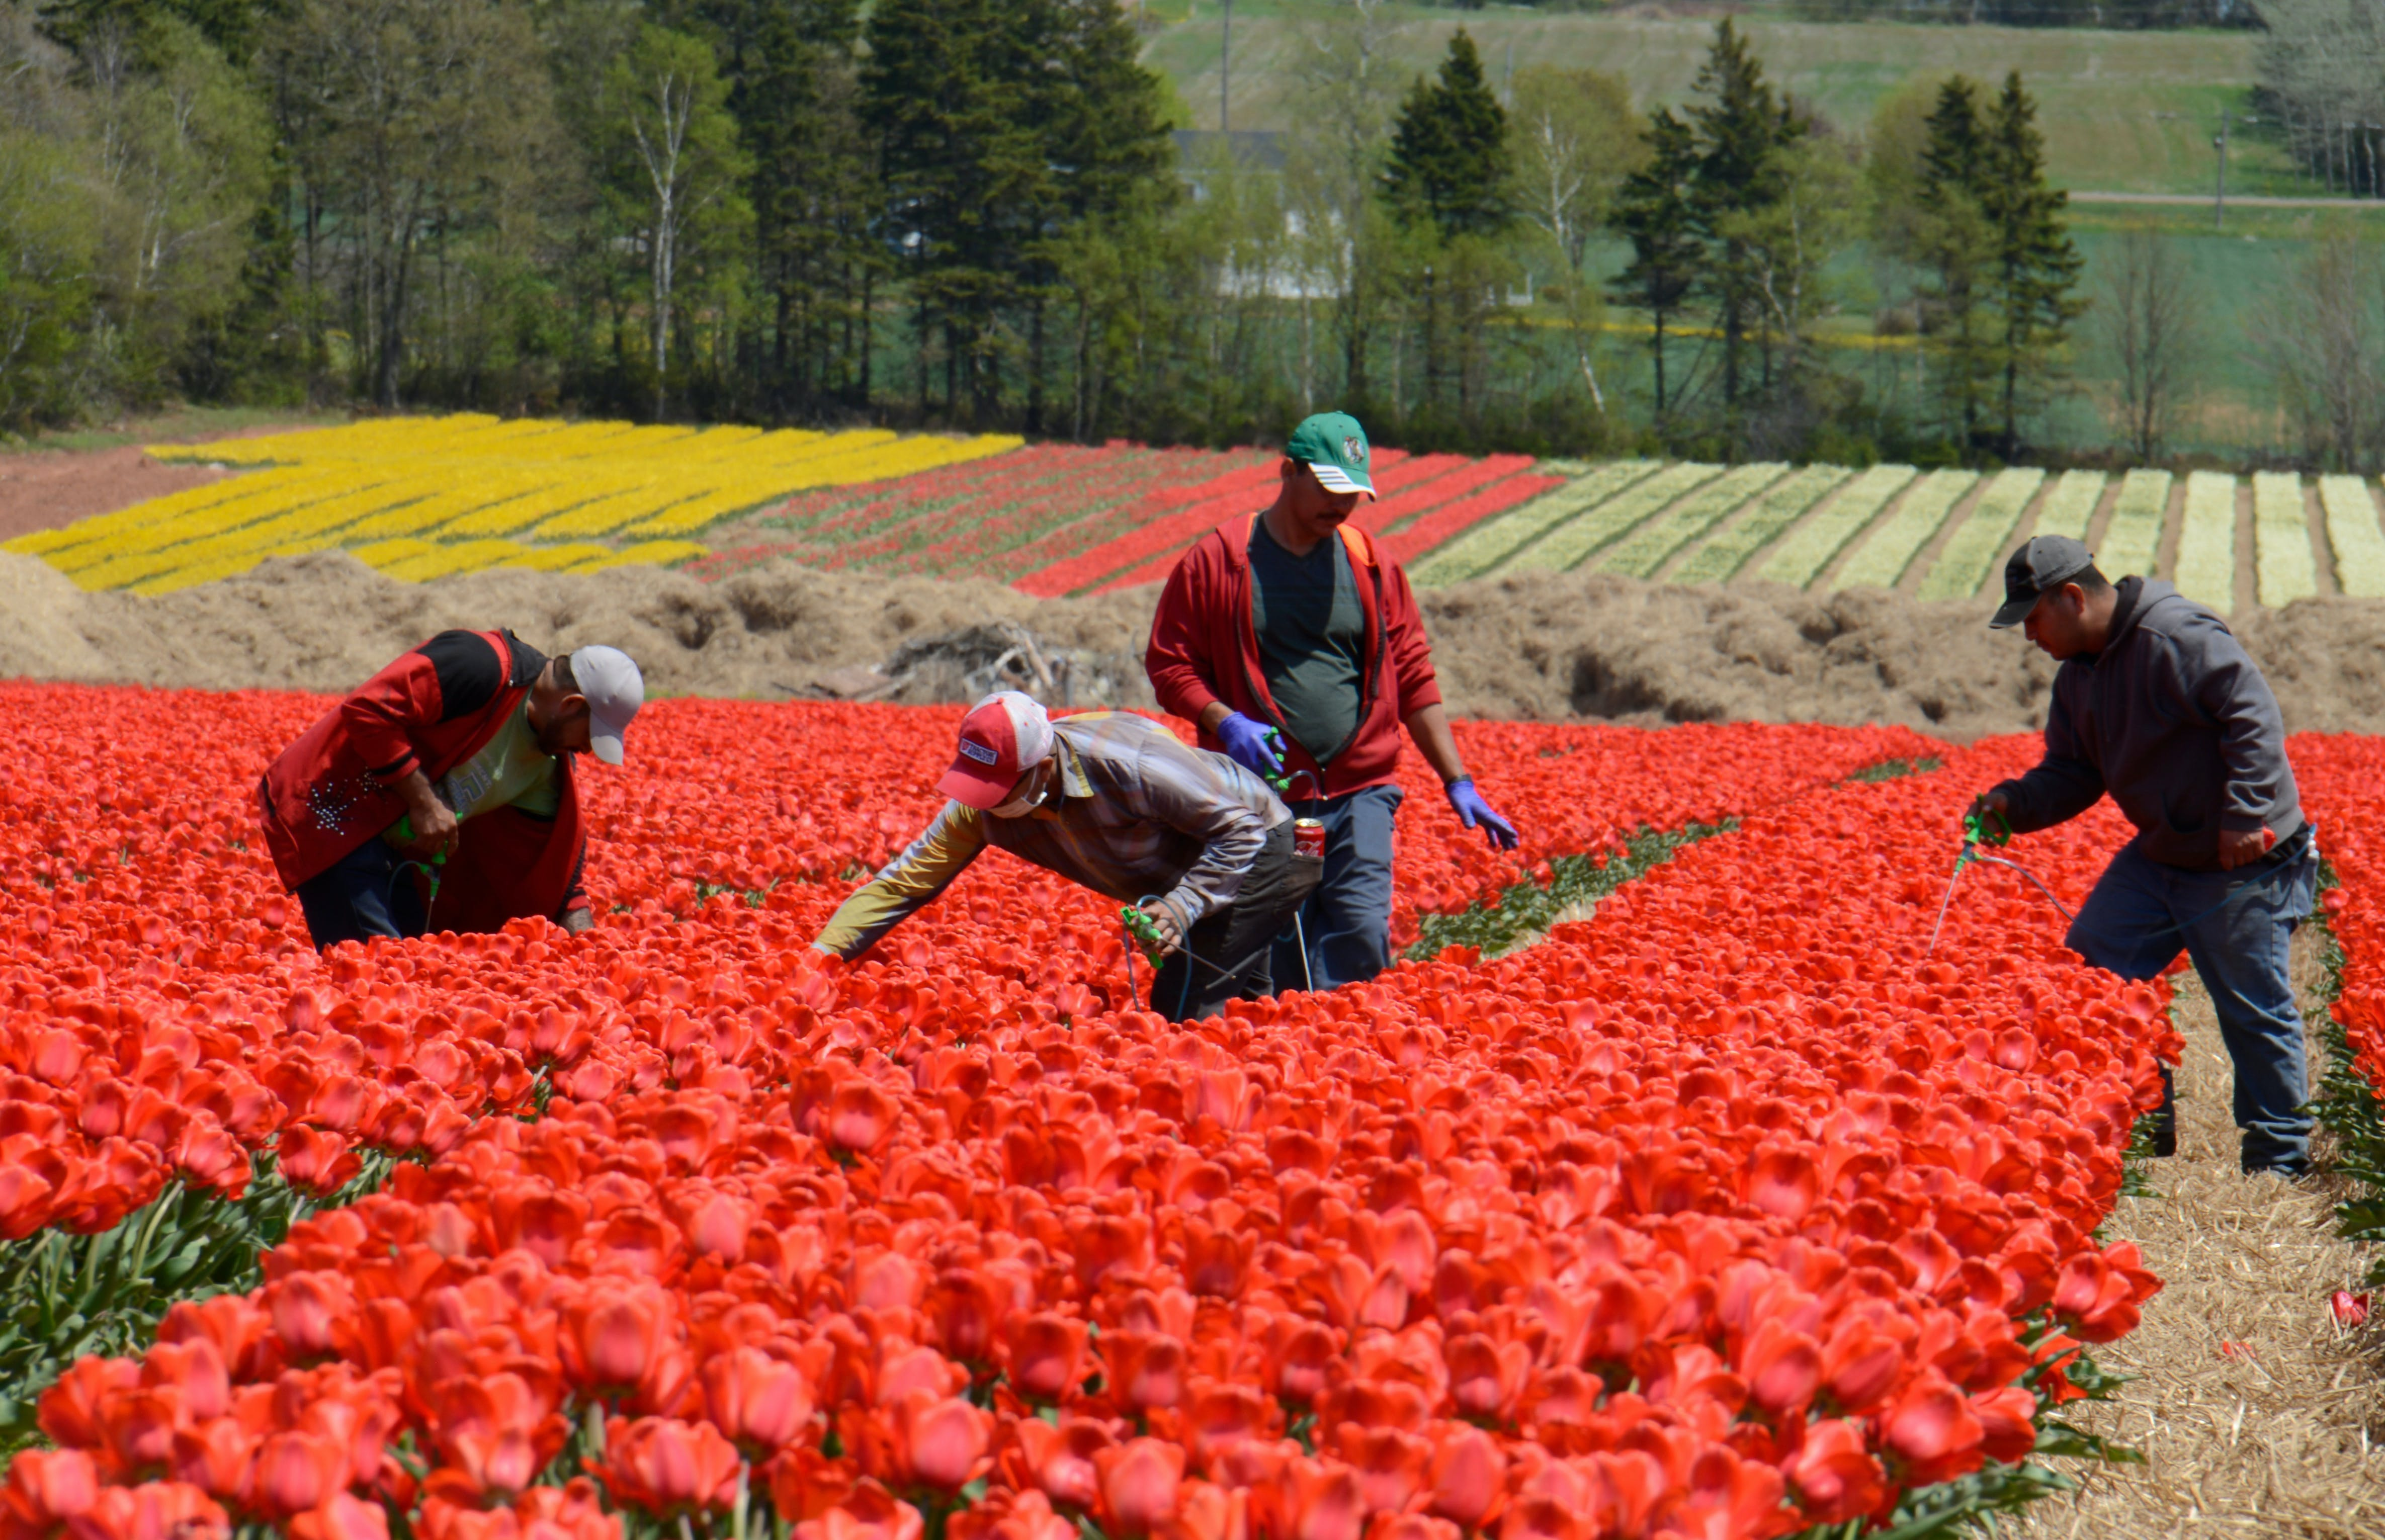 Showing their colours Vanco Farms employees work on a field of tulips in Waterside on Thursday. They are looking for different colours and viruses. Those plants then get removed so the stock stays healthy. The 50 acres of fields are located on the Waterside Road near Pownal and the tulips can be seen from the Trans-Canada Highway. People are able to view the flowers from Waterside Road, but are reminded entering, walking or driving through the field is prohibited and the flowers cannot be picked. Bulbs are planted in the fall and then covered in straw to protect them from weather fluctuations. When the tulips are in bloom, the petals are removed to let energy of the plant feed back into the bulb. The plants are left for about six weeks, allowing the bulbs to grow and propagate. The bulbs are harvested in mid-July. The company uses the larger bulbs in its greenhouse production and for sales to the landscape trade. The smaller ones are kept for another growing cycle in the field. Vanco is the only farm growing field tulips for bulb production on the east coast of North America. There's also a one-acre field at Belfast Tulips, which is opening today at 9 a.m. One half is a u-pick and the other half is for professional photos. There's a $10 admission and the price for a full bucket is $25. Jason Malloy/The Guardian